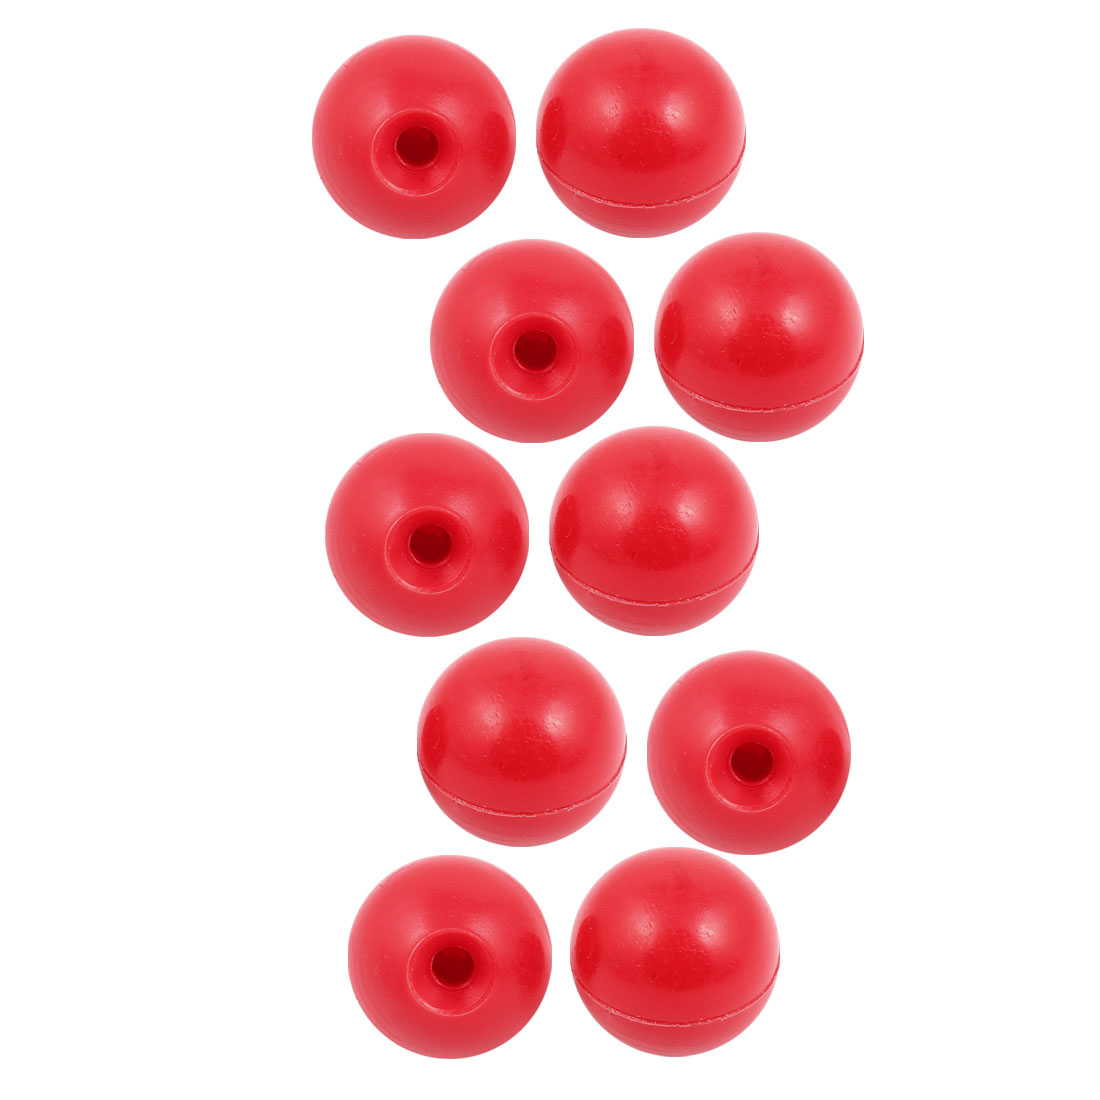 10 Pcs M8 x 35mm Plastic Ball Machine Tool Accessories Console Handle Red